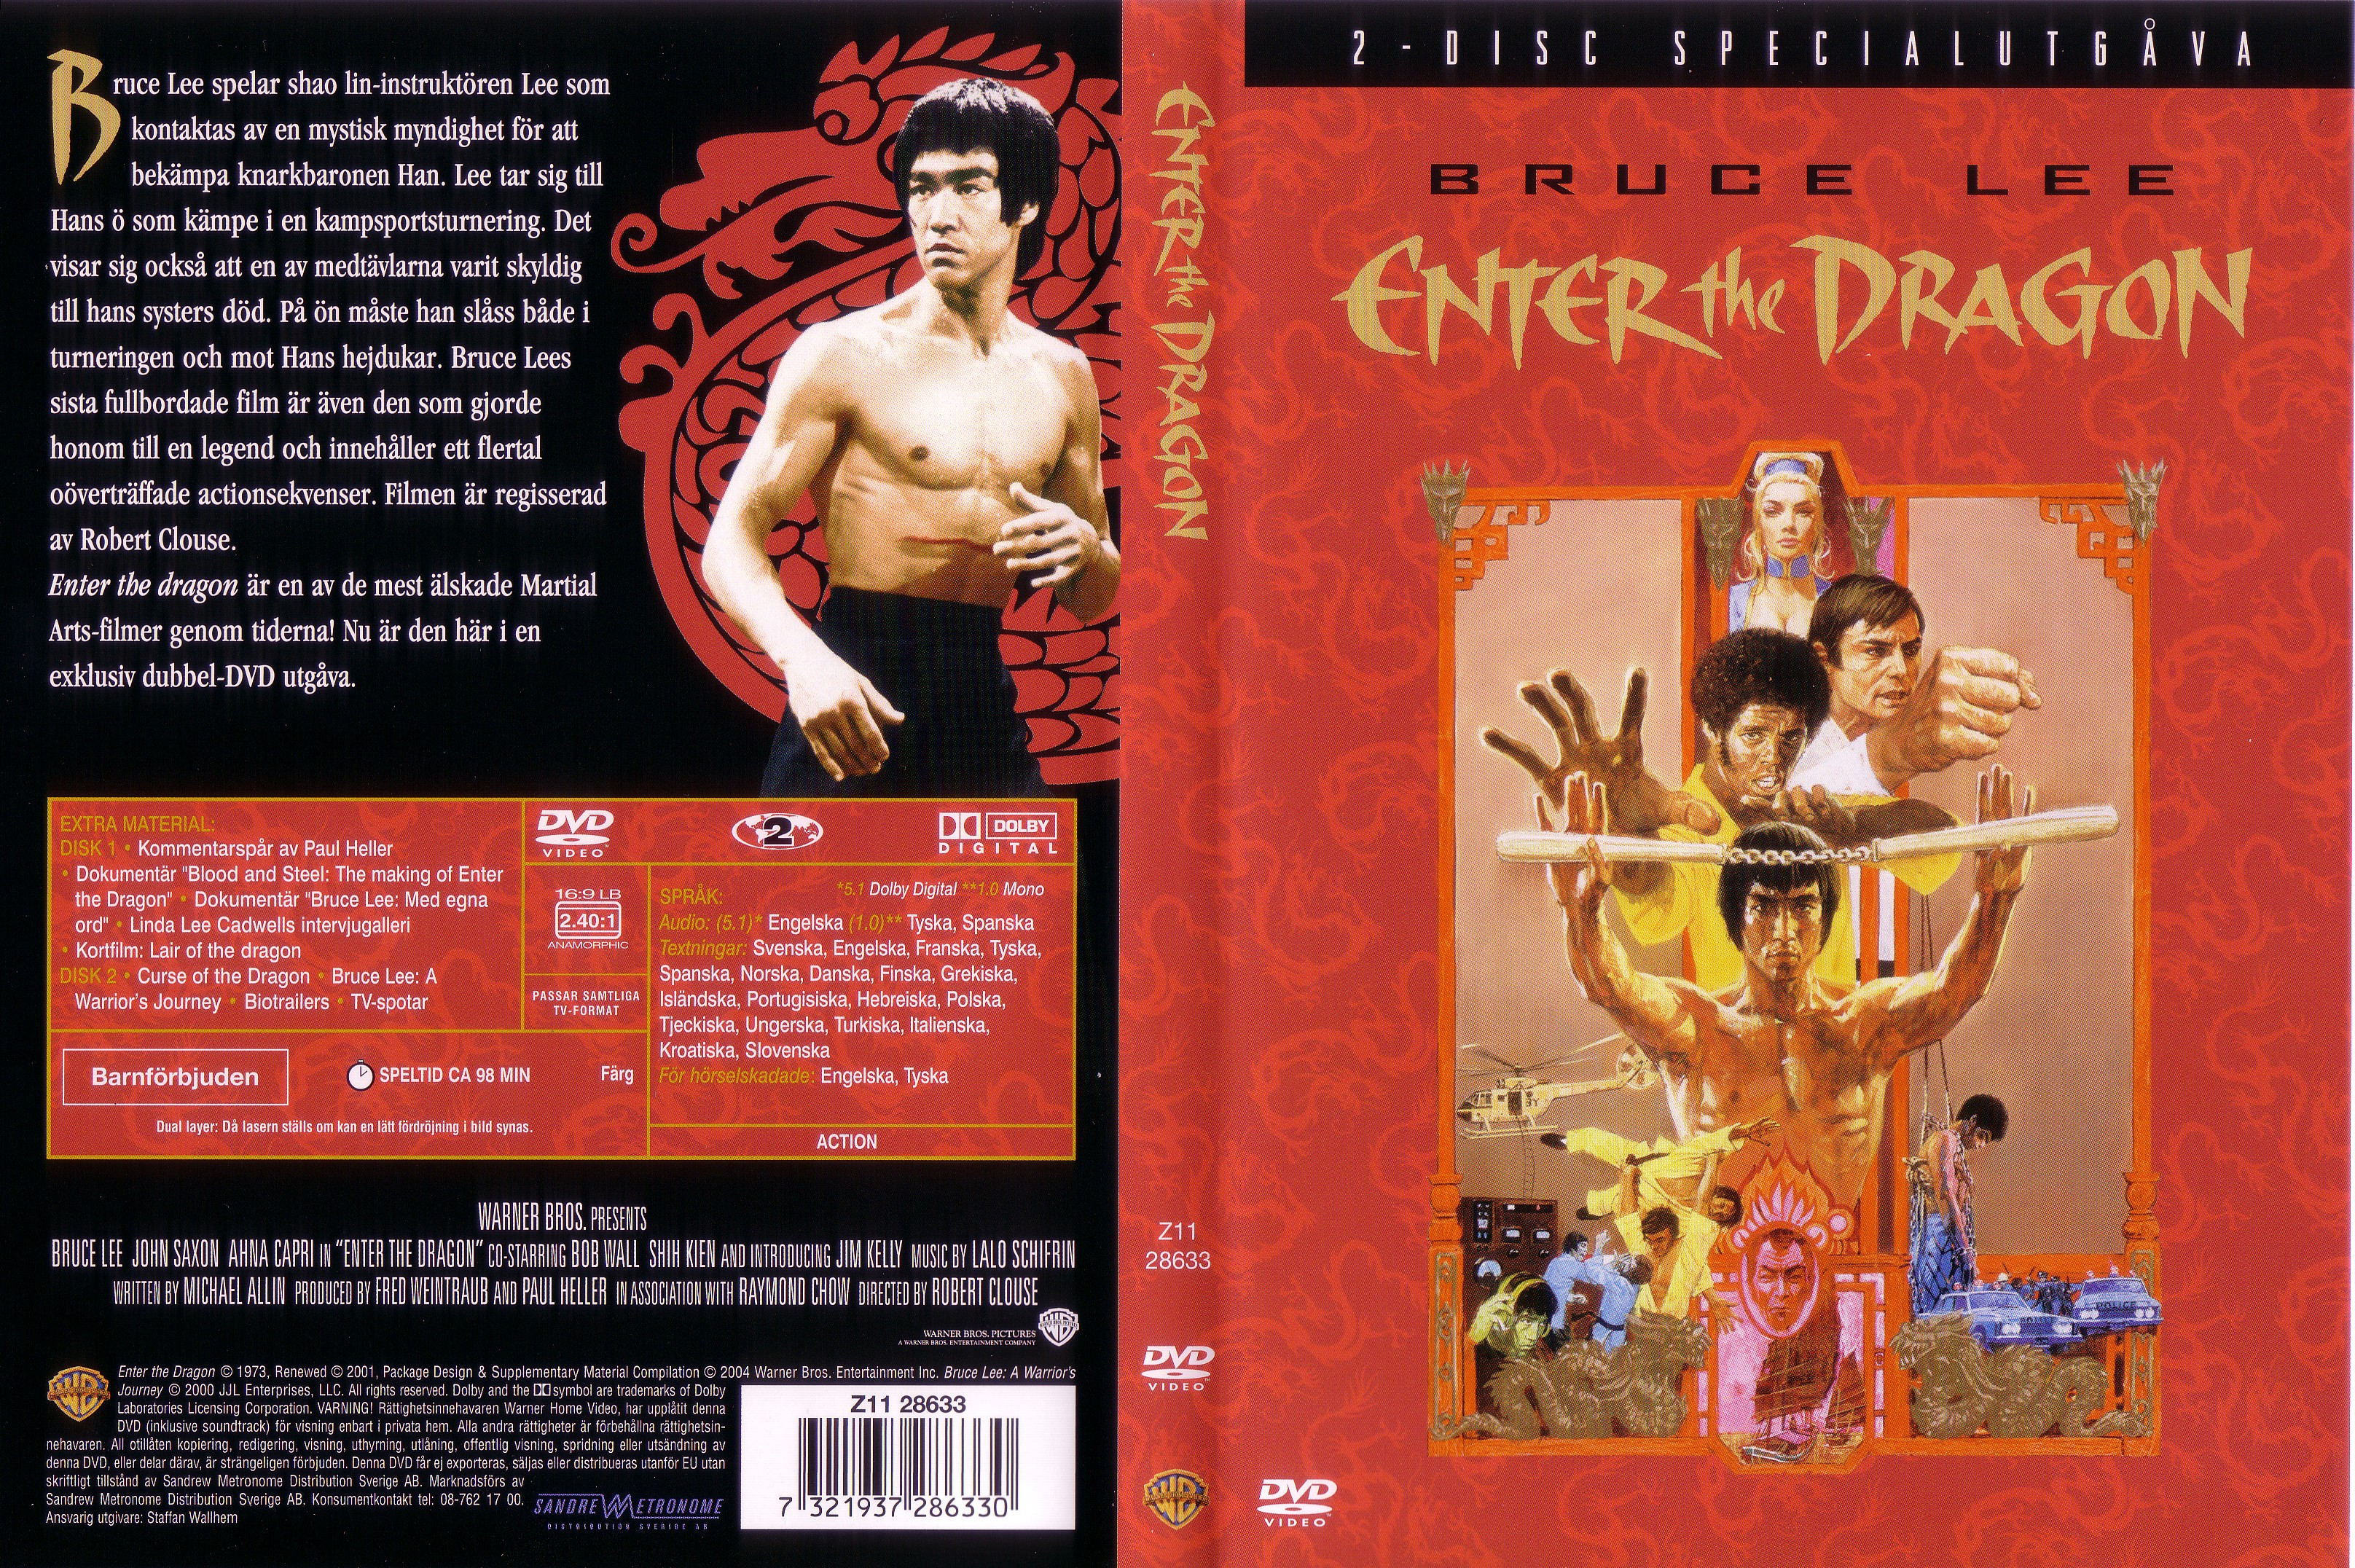 Enter the dragon sex scene erotic pictures